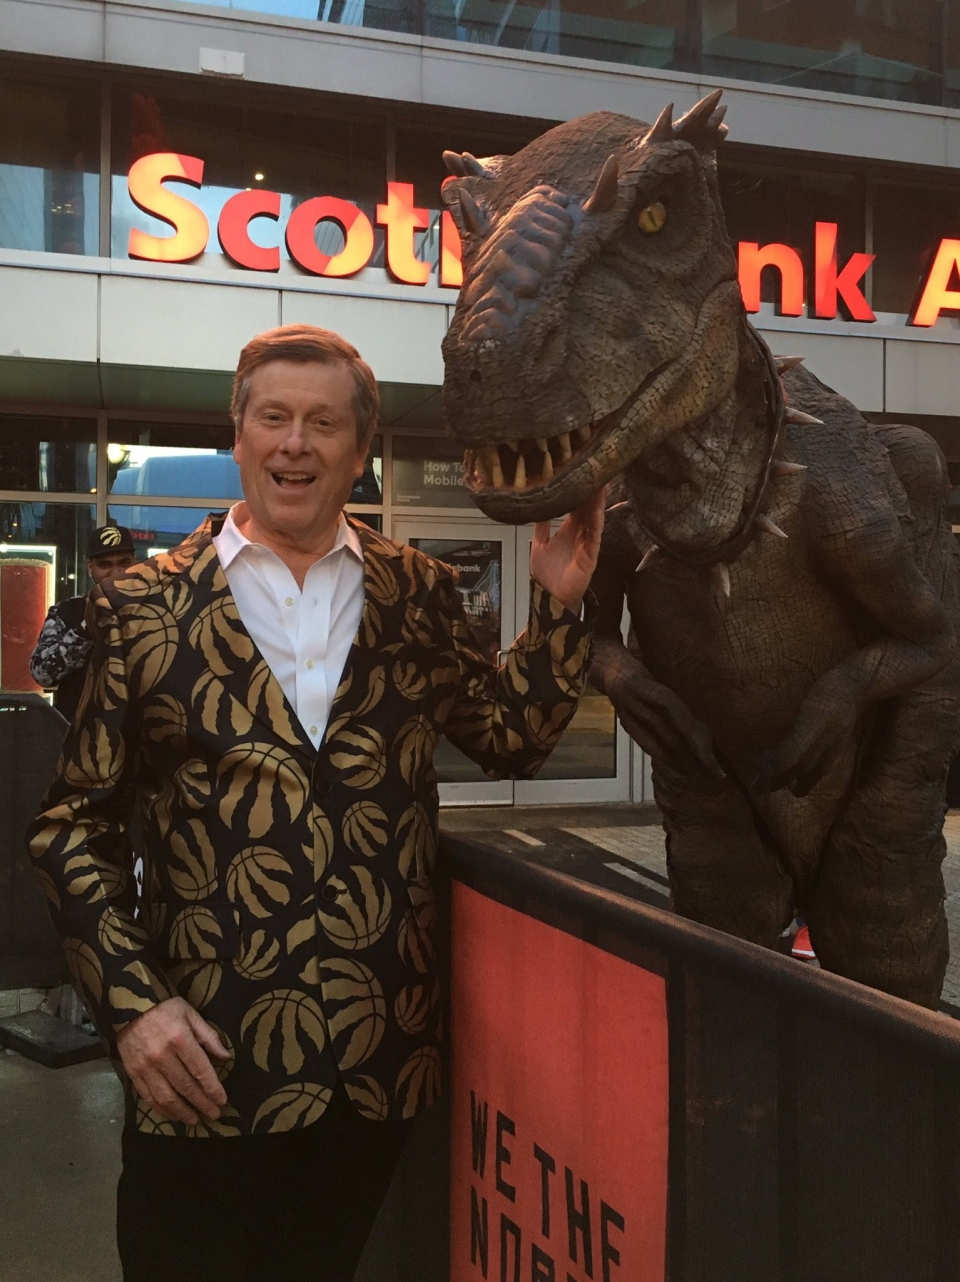 Wearing a blazer with gold Toronto Raptors logos on it, Toronto mayor John Tory poses with a man in a dinosaur costume at Jurassic Park outside Scotiabank Arena ahead of Game 1 of the NBA Eastern Conference final between Toronto and Milwaukee Bucks in Toronto on Wednesday, May 15, 2019. THE CANADIAN PRESS/HO - Twitter, @JohnTory